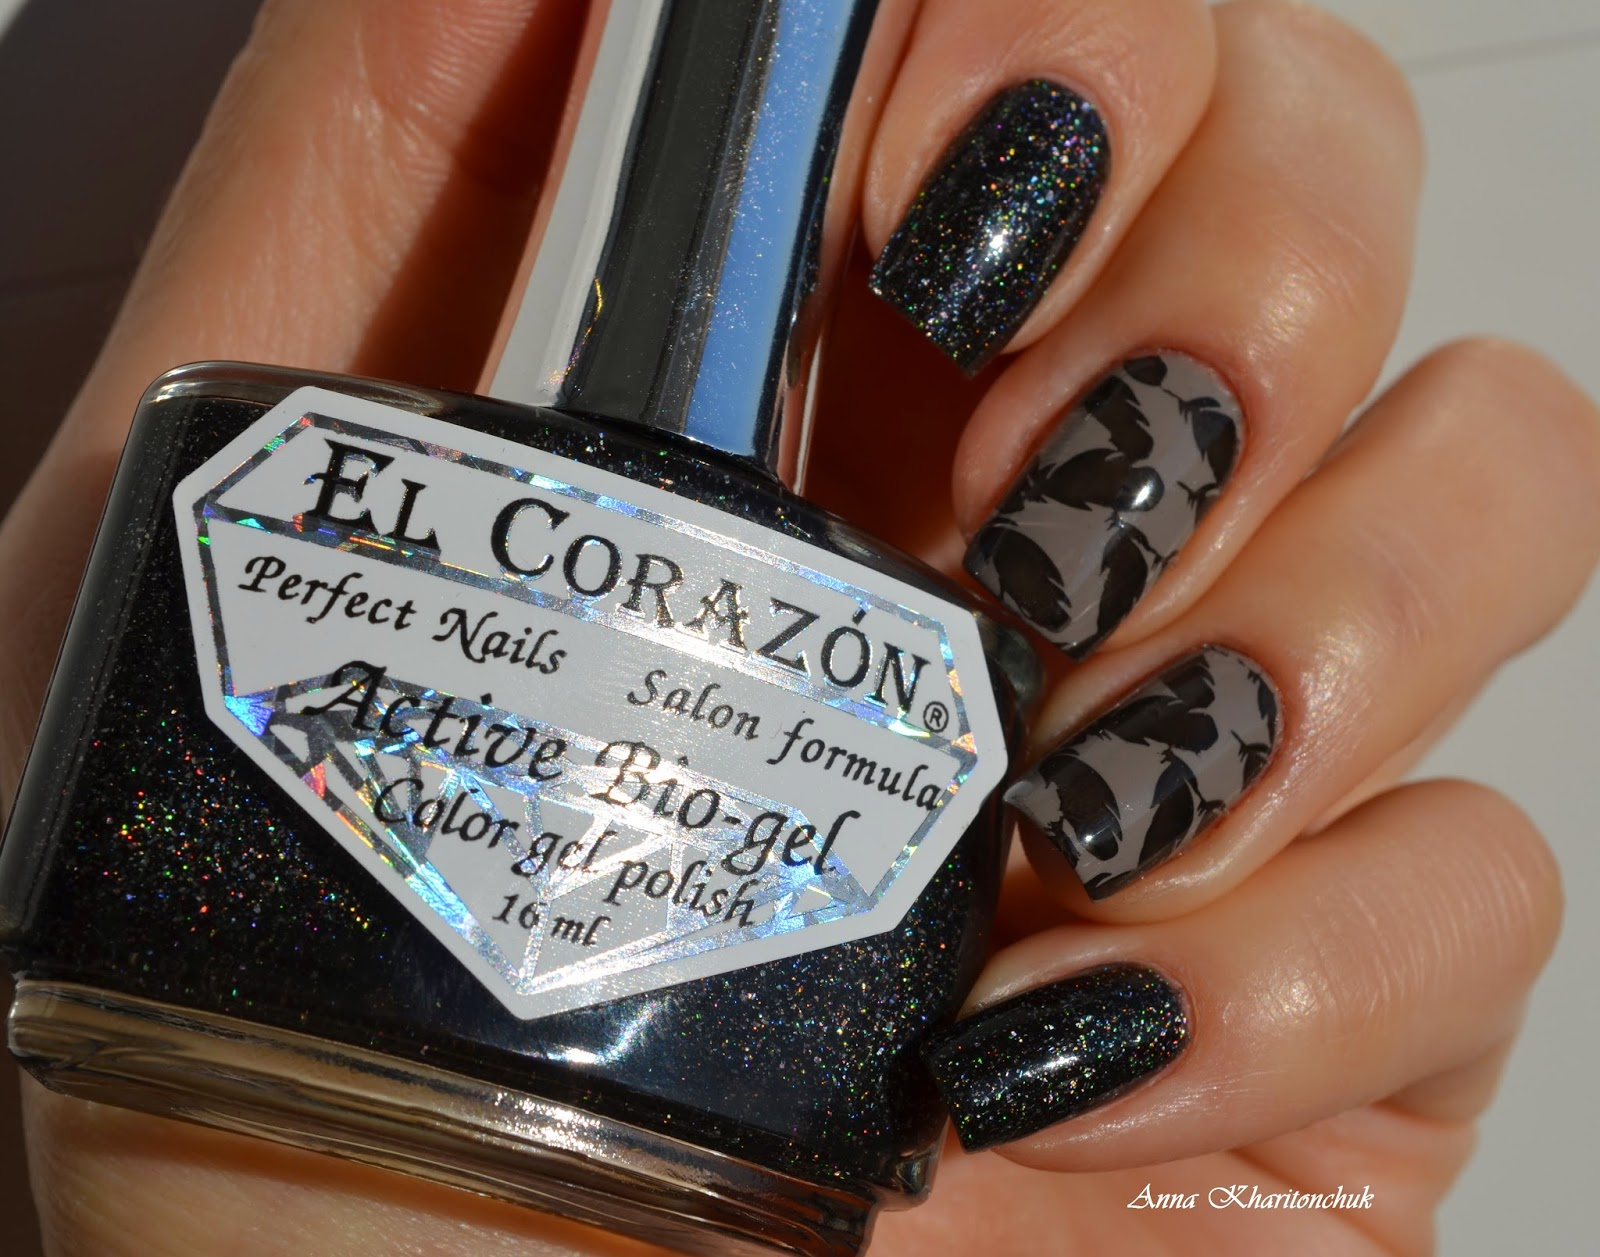 Winter11DNC. Голографик. Дуэт EL Corazon Active Bio-Gel  Large Hologram # 423/508 Cosmos и Opi French Quarter For Your Thoughts стемпинг с BP-18